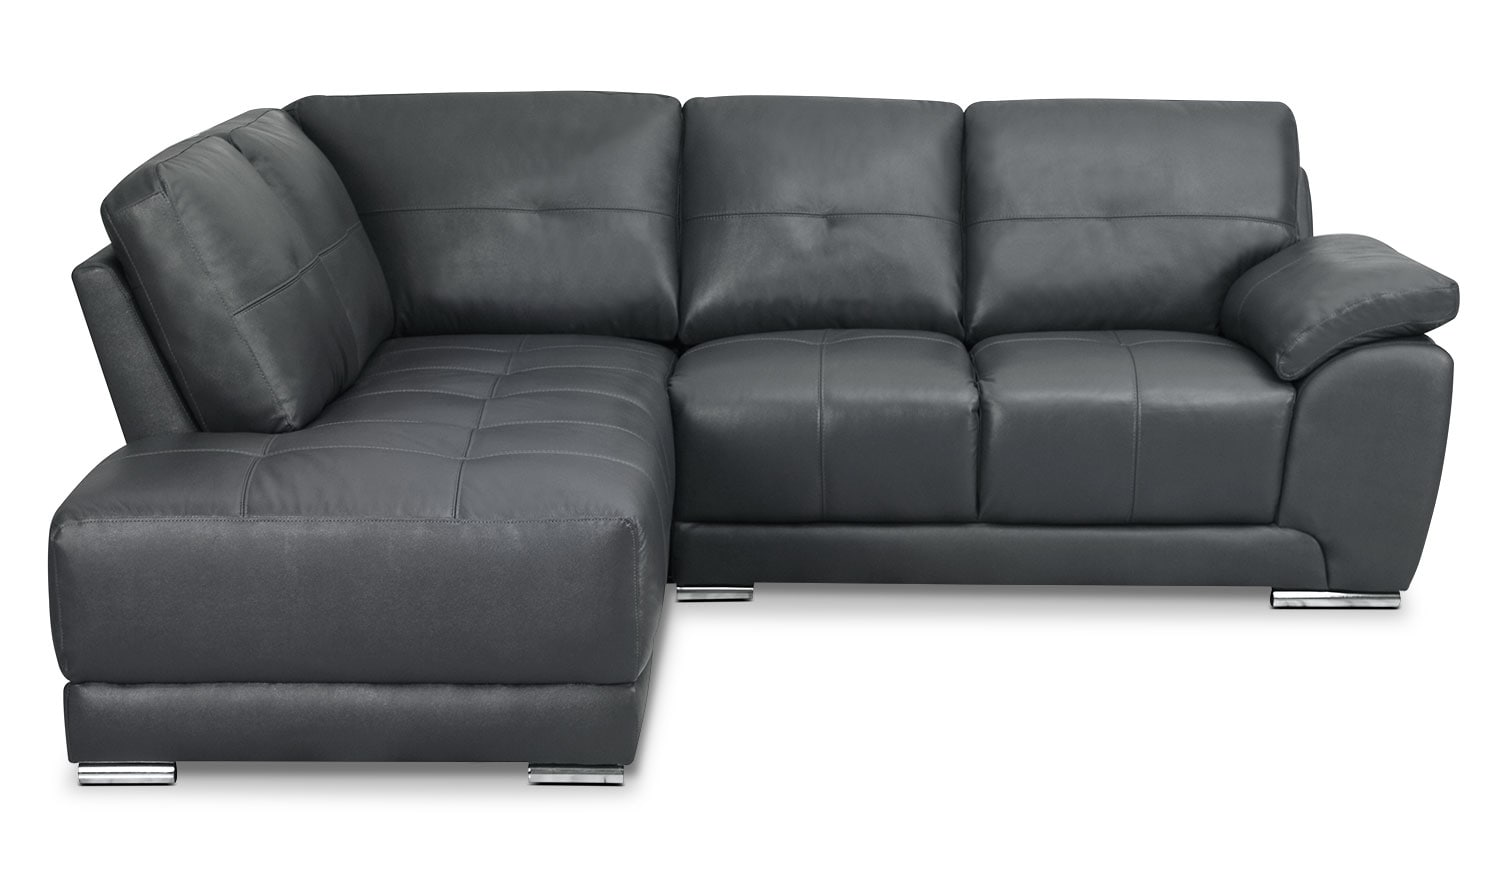 Rylee 2-Piece Genuine Leather Left-Facing Sectional - Grey